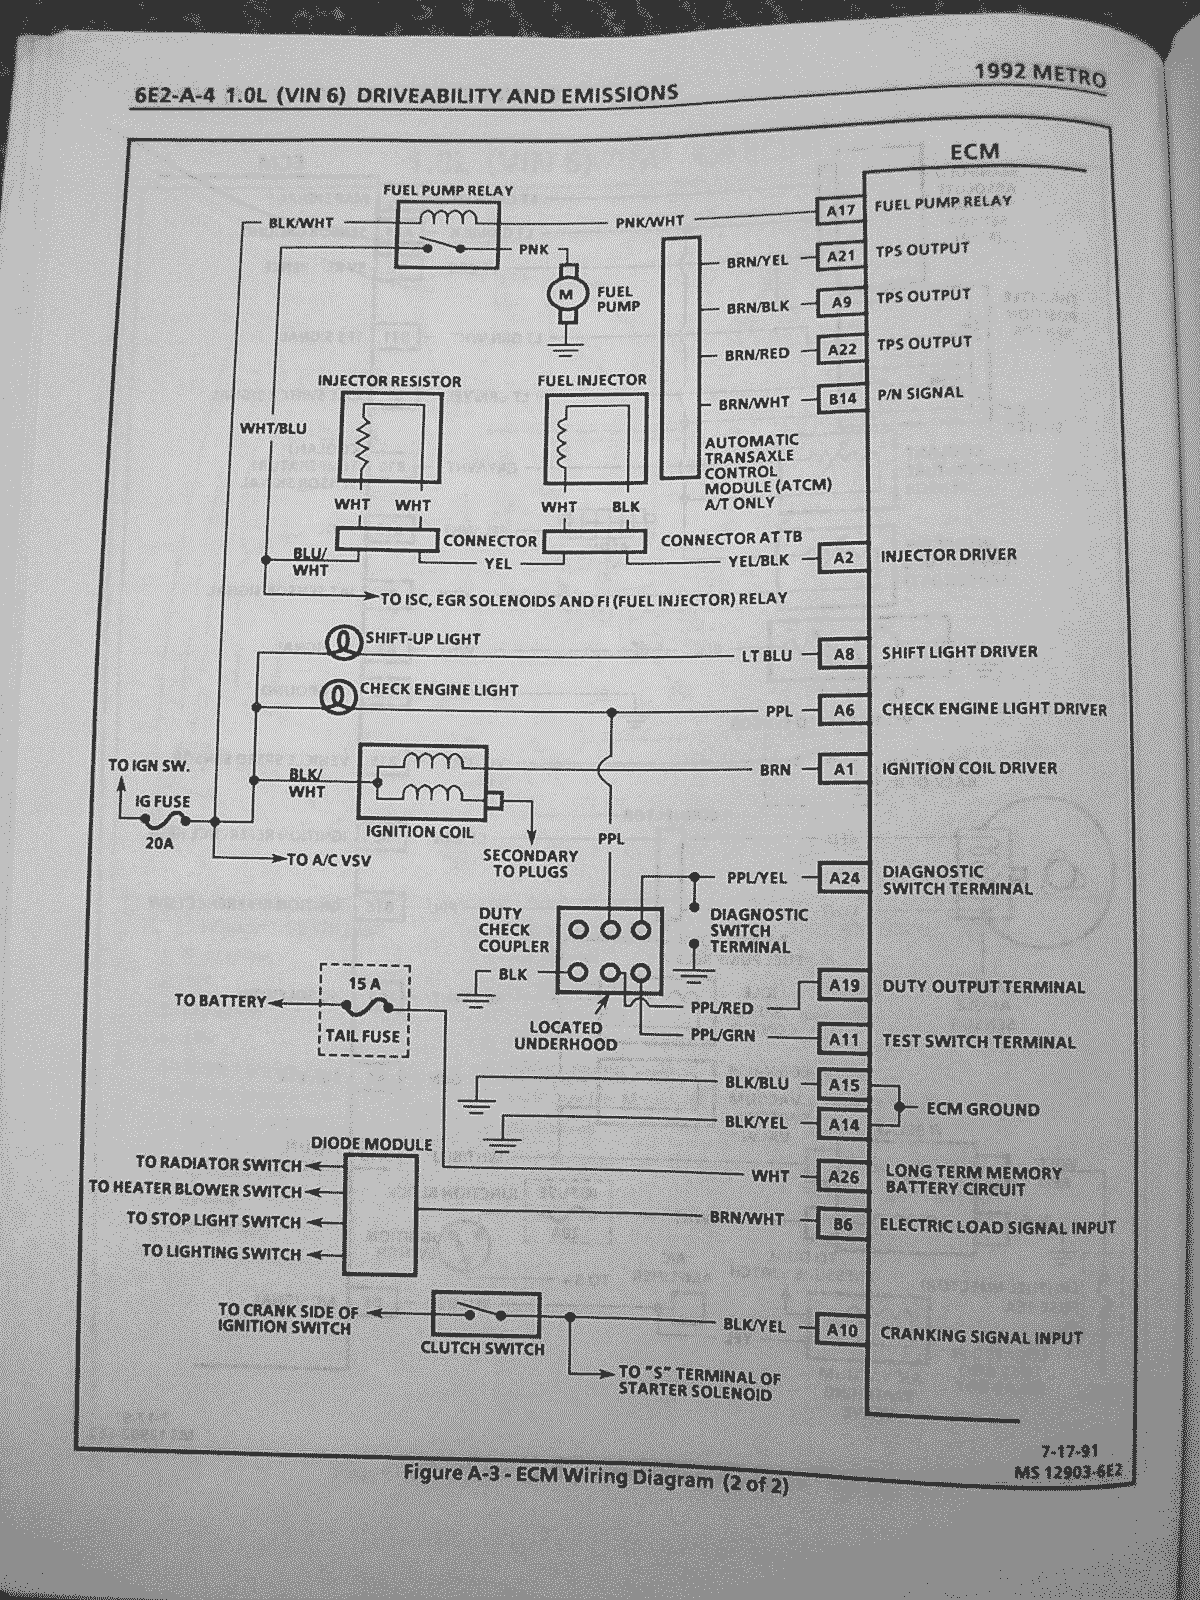 6e2 a 4 swift wiring diagram swift wiring diagram \u2022 free wiring diagrams wiring diagram for 1994 geo prizm at gsmportal.co